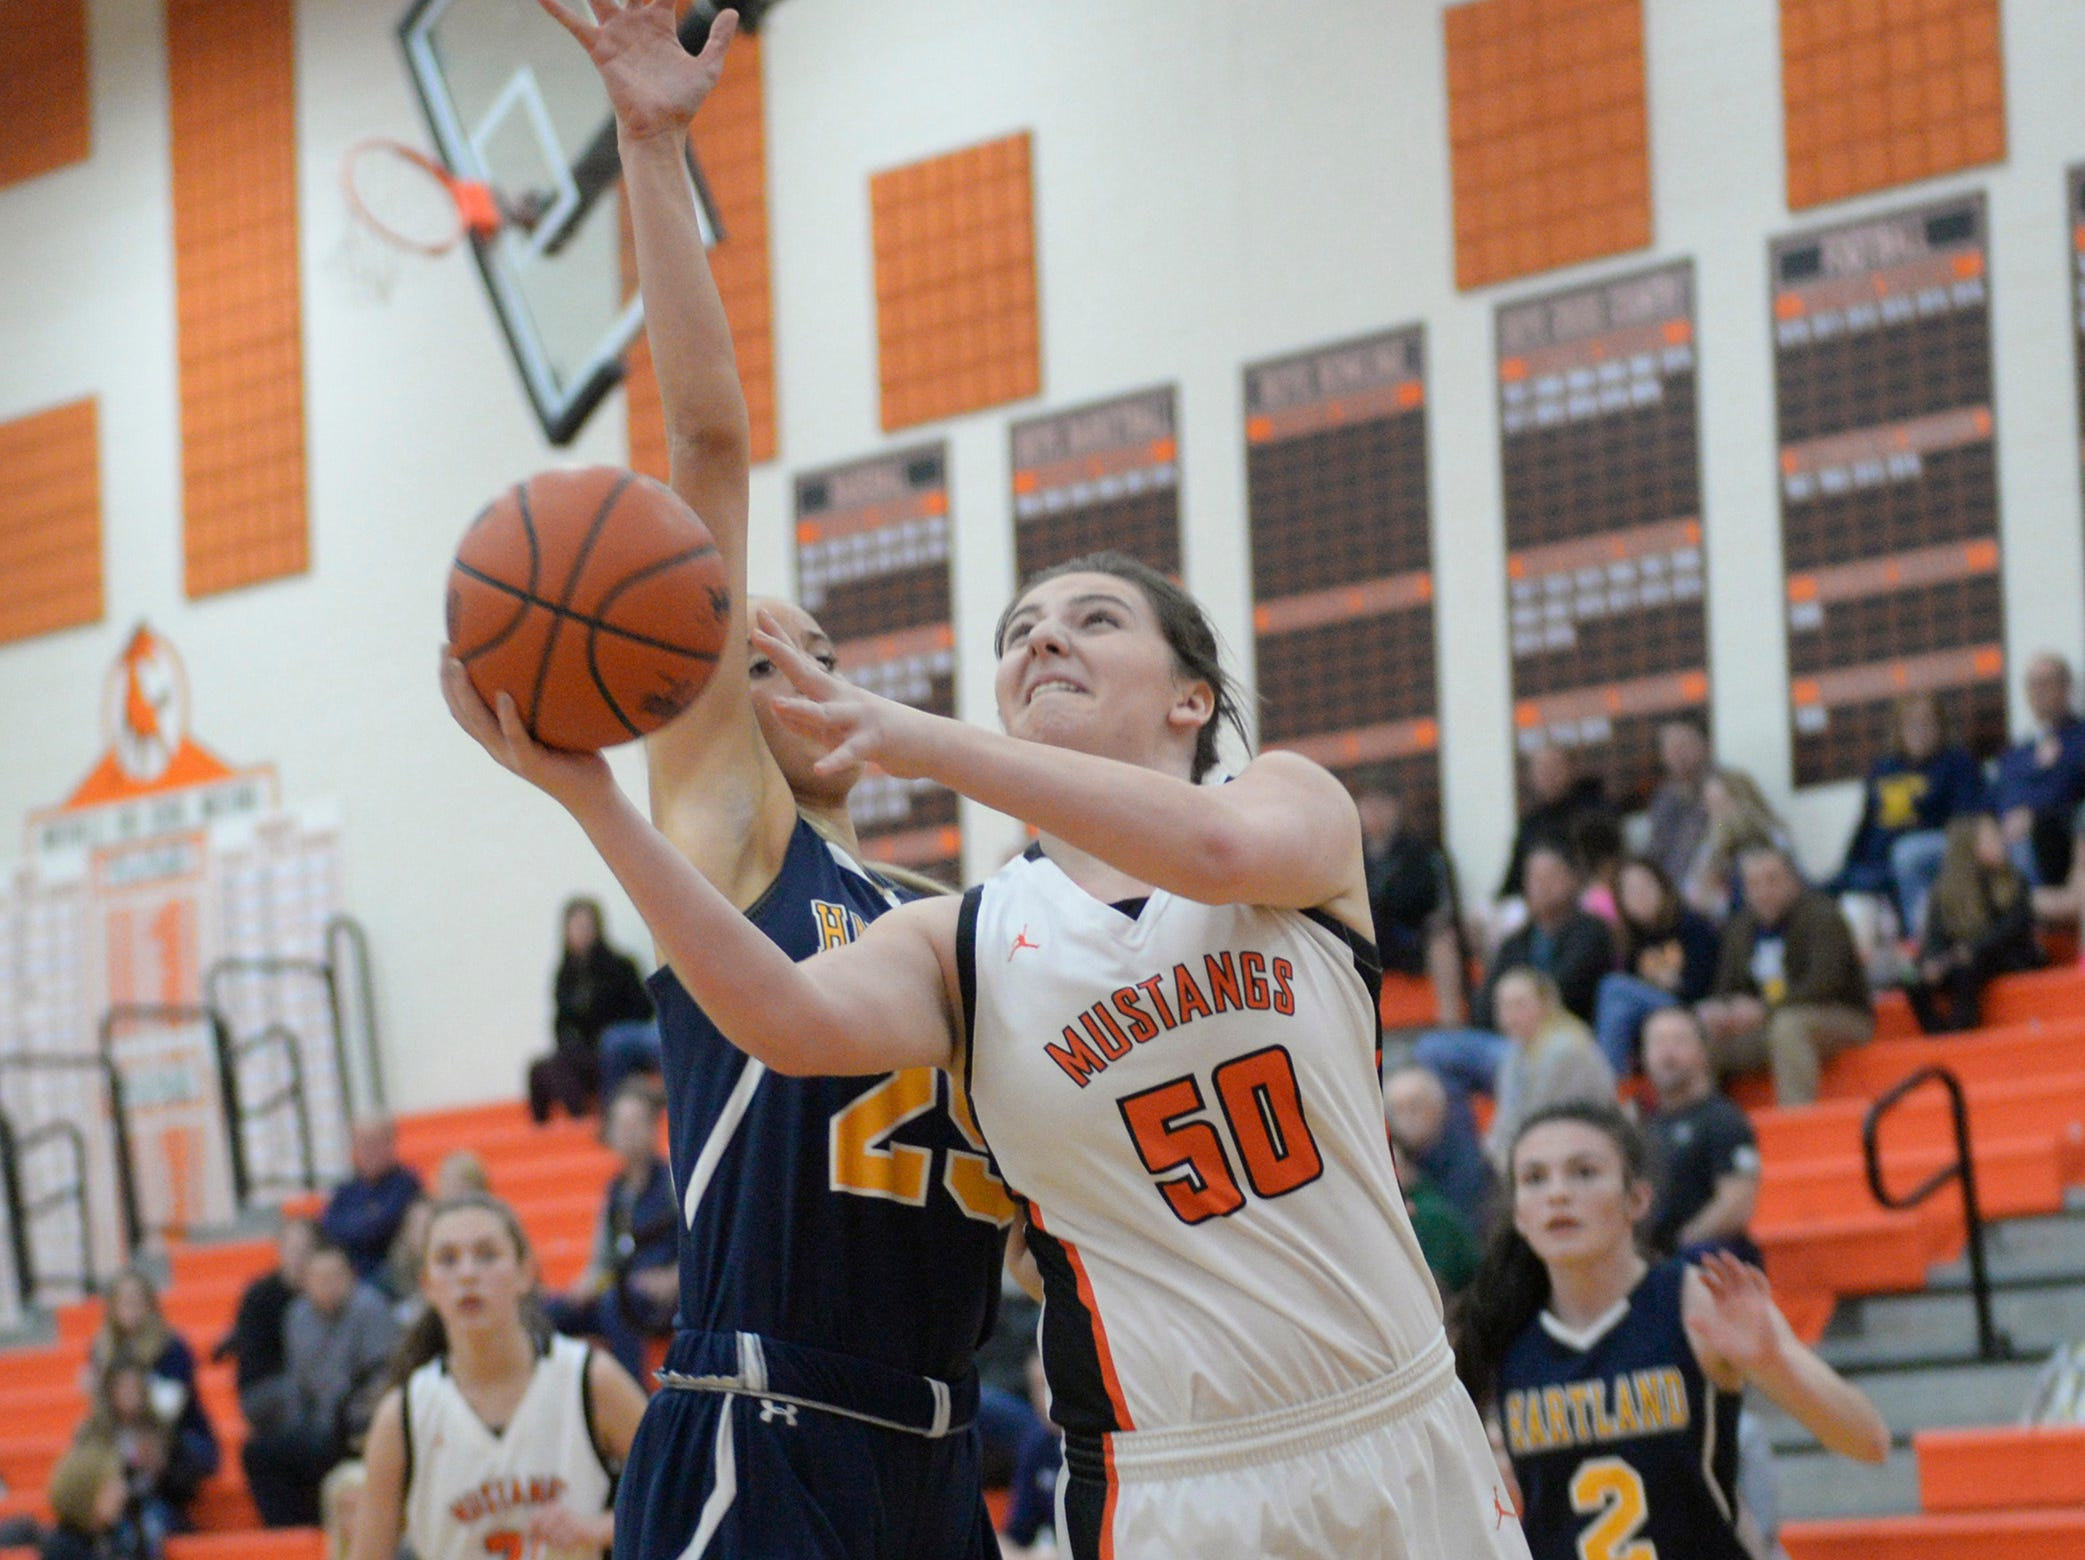 Northville's Julia Straky (50) is guarded by Hartland's Whitney Sollom (25) during a KLAA match up between the Mustangs and Eagles at Northville Jan. 8, 2019